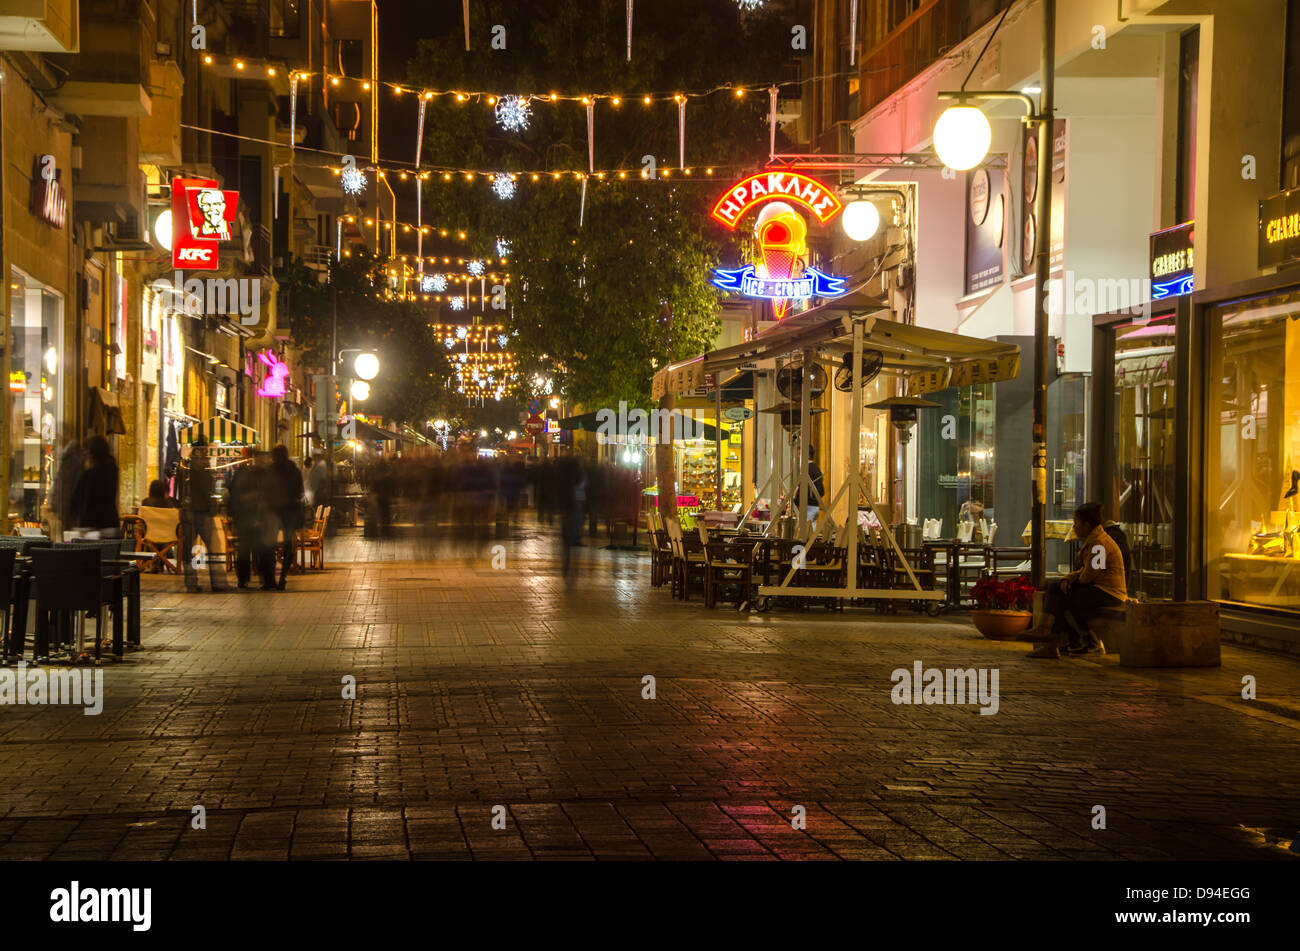 view of the lidras (ledra) street in nicosia, cyprus at night - Stock Image